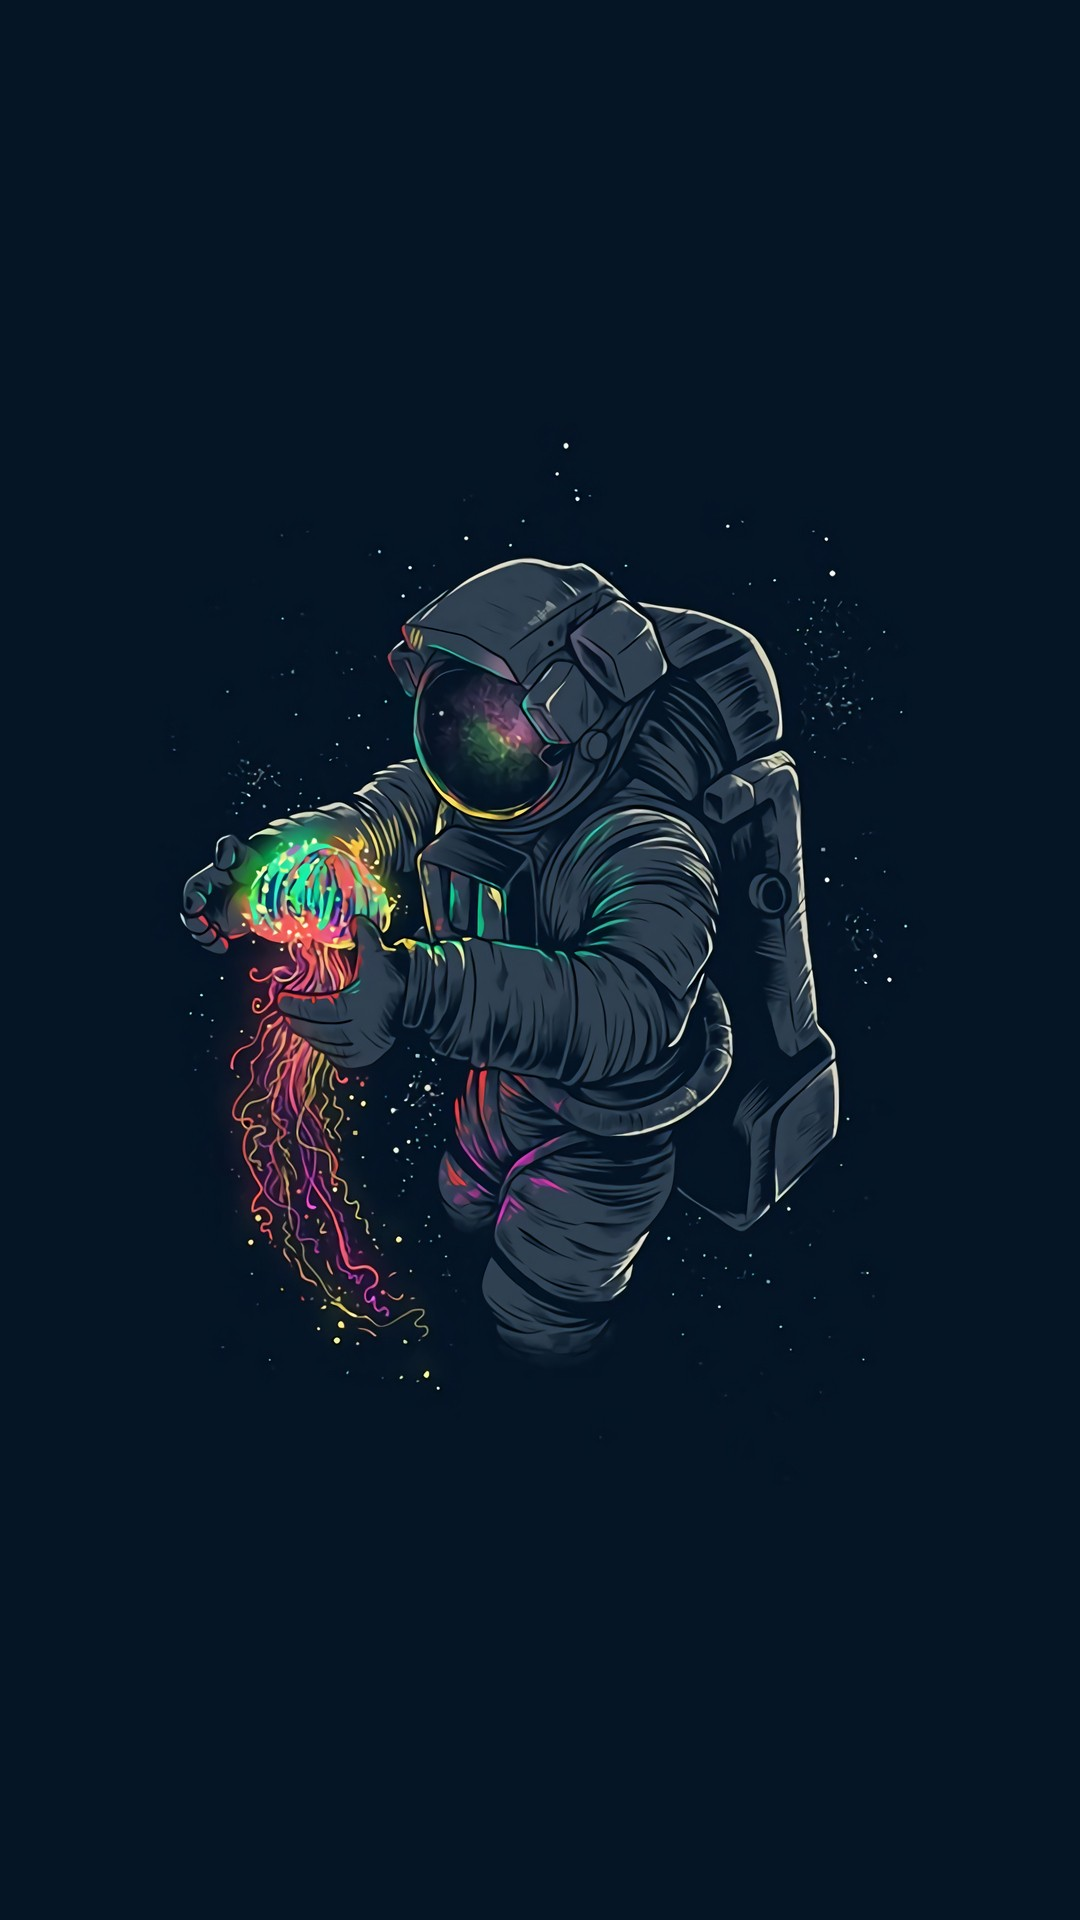 Space Jelly Wallpaper – [1080×1920]